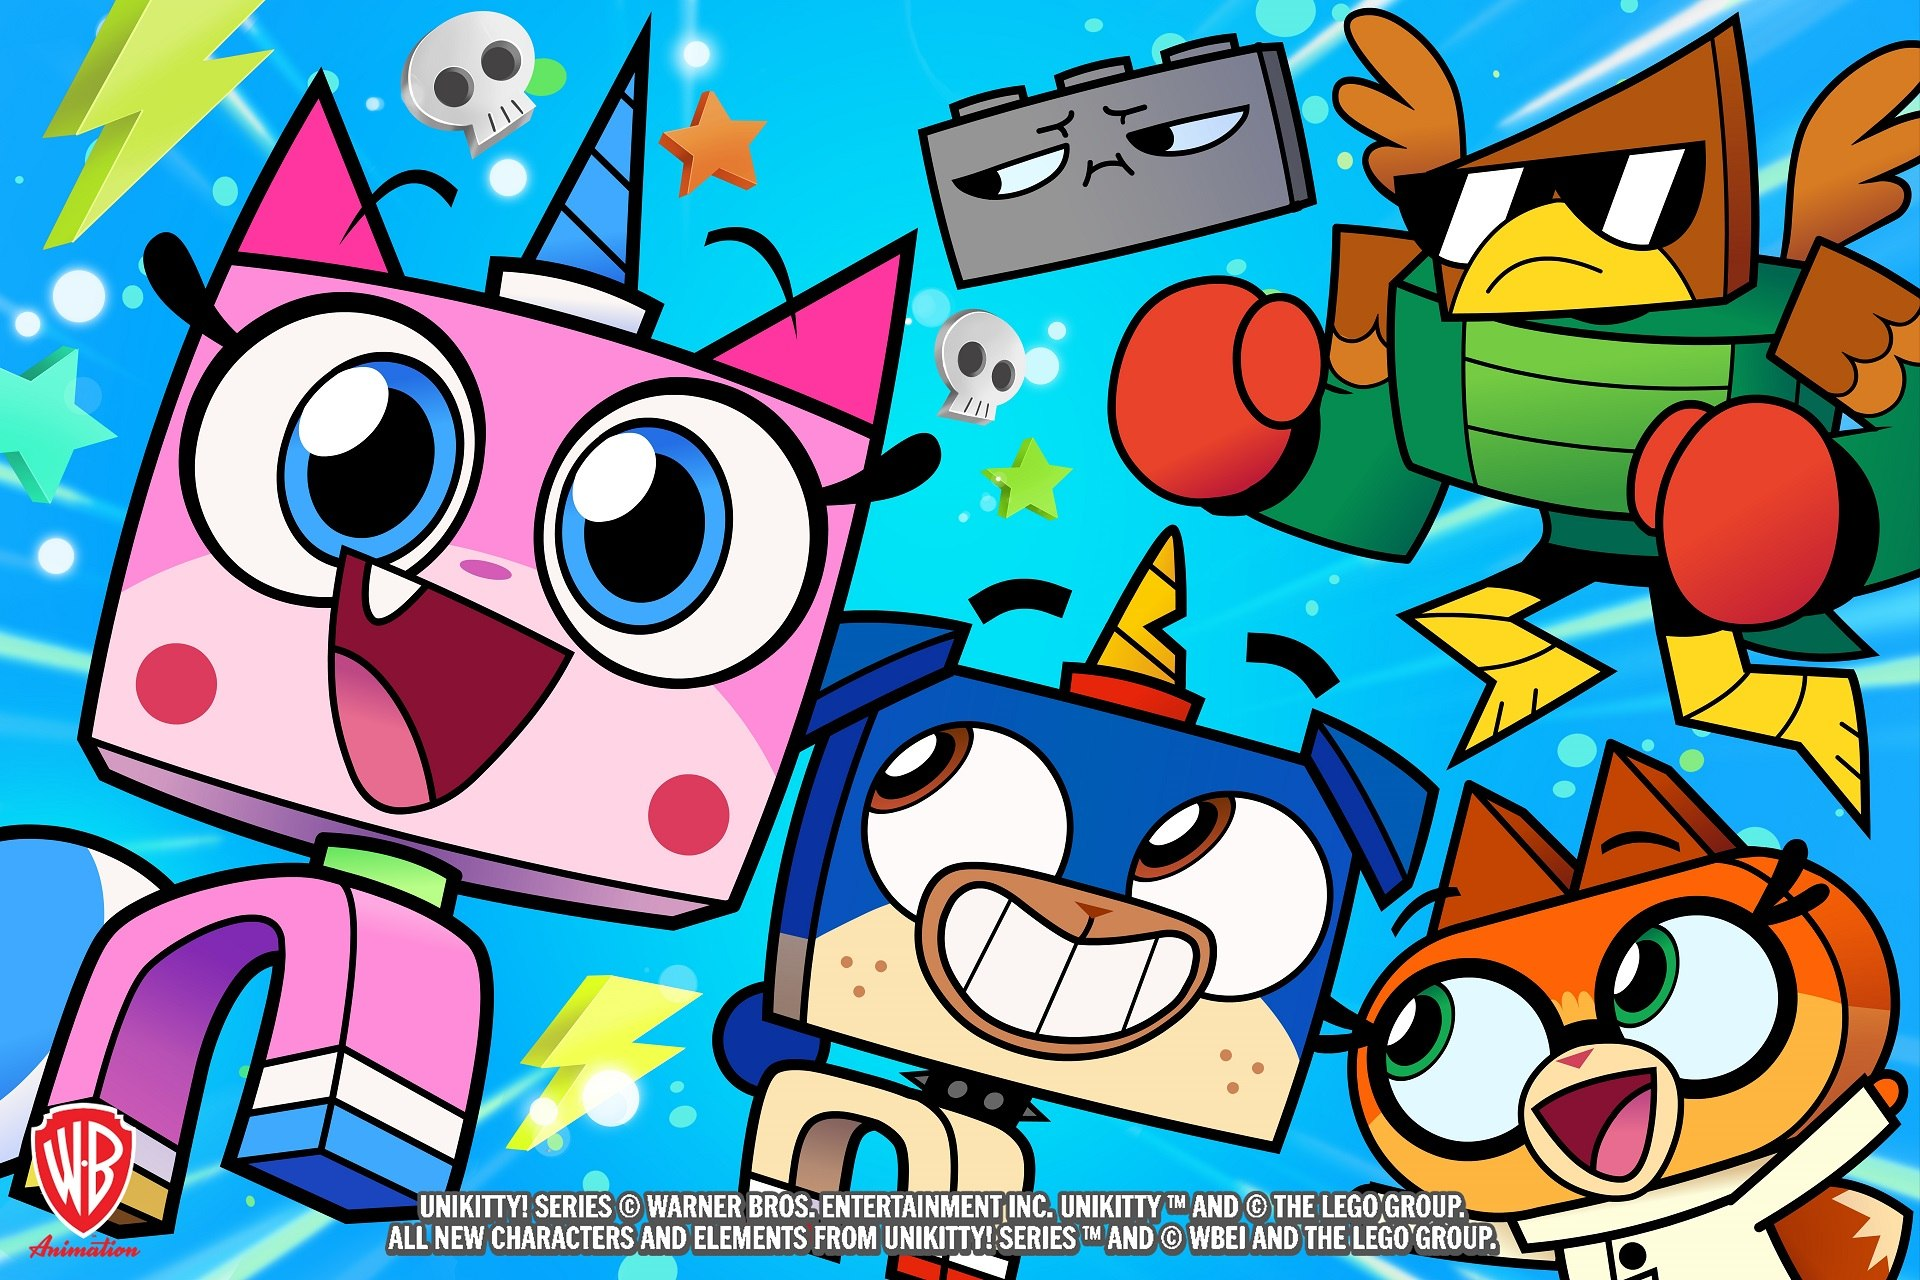 Cartoon network greenlights unikitty series from warner for Fishs eddy coupon